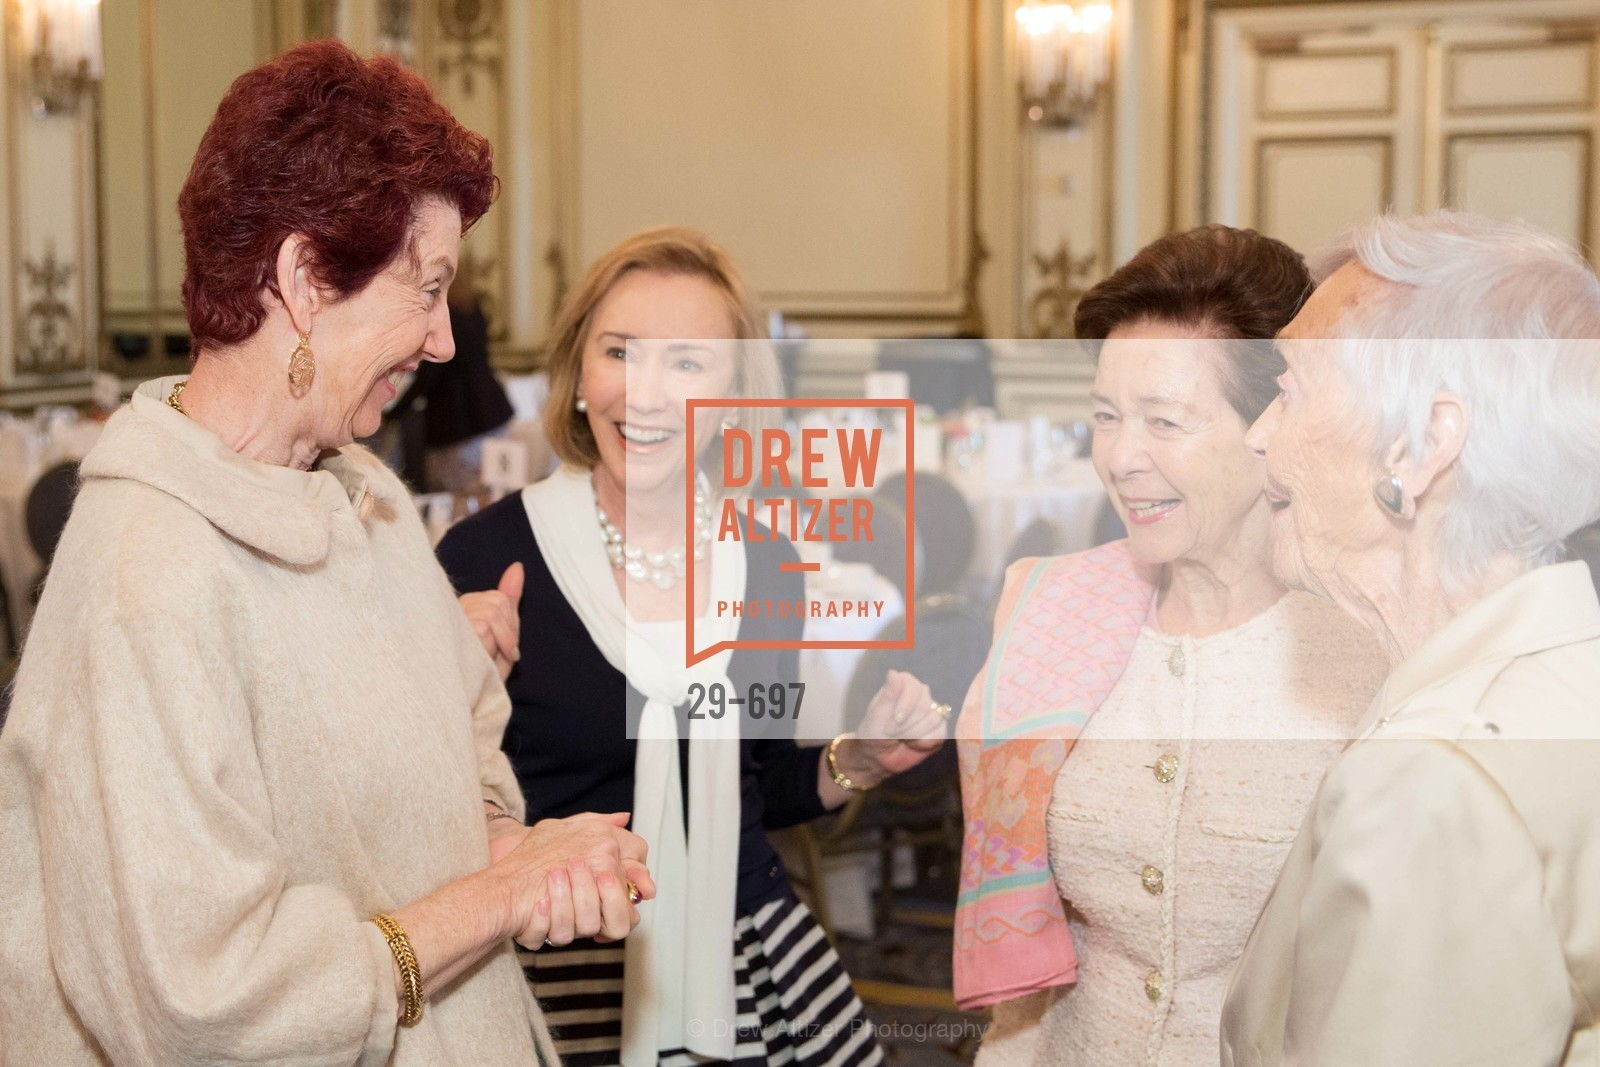 Susan Hoganson, Trish Otstott, Roselyne Swig, Peggy Montgomery, JUNIOR LEAGUE OF SAN FRANCISCO's WATCH Luncheon, US, May 4th, 2015,Drew Altizer, Drew Altizer Photography, full-service agency, private events, San Francisco photographer, photographer california